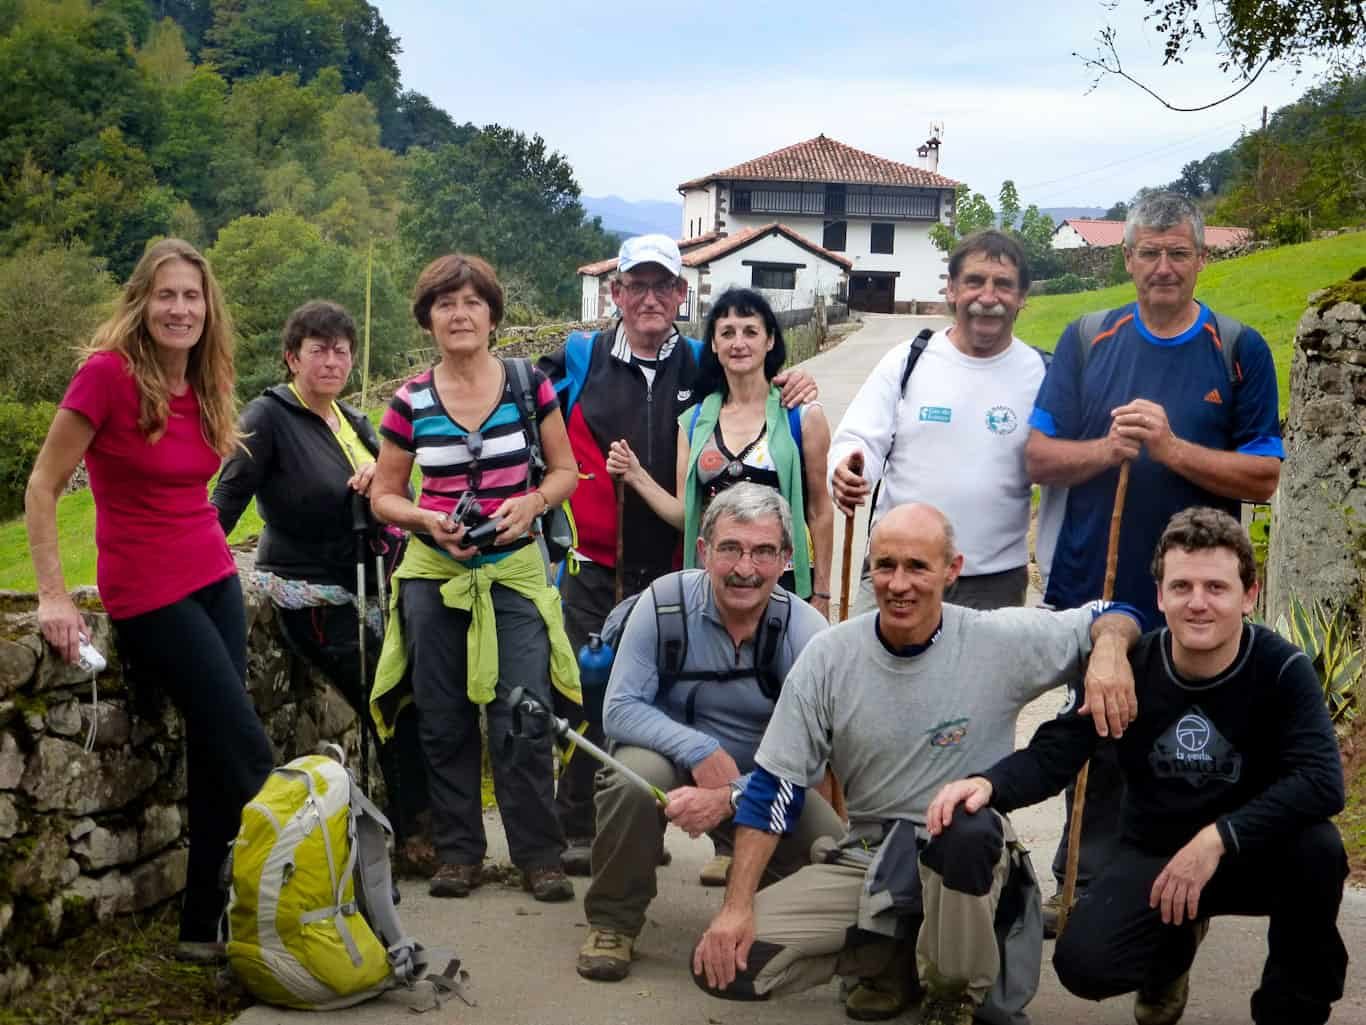 Walking the Pyrenees escape lines with friends and relatives of the Basque resistance